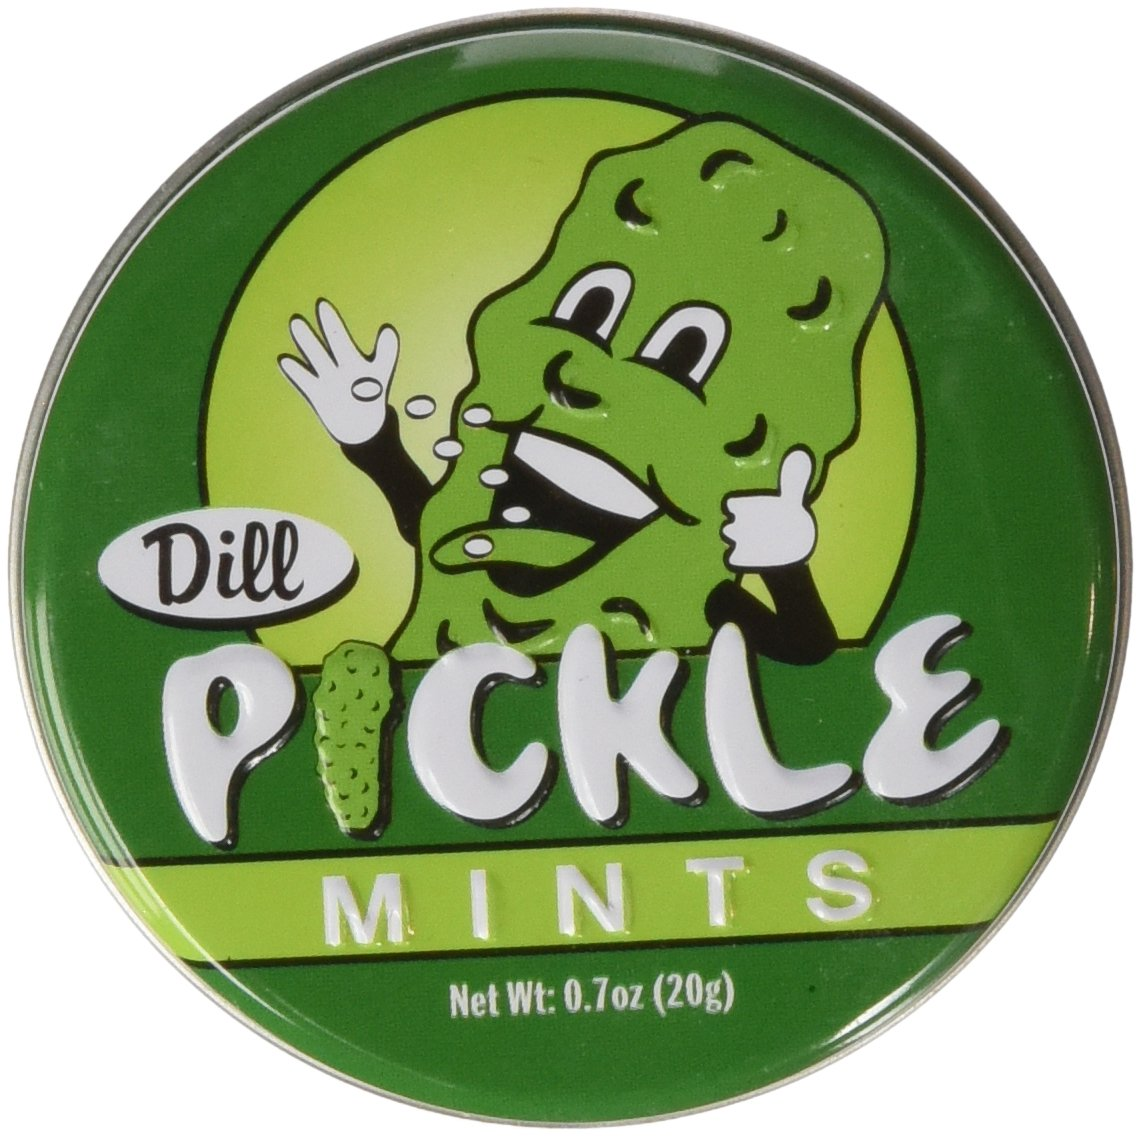 Dill Pickle Flavored Mints